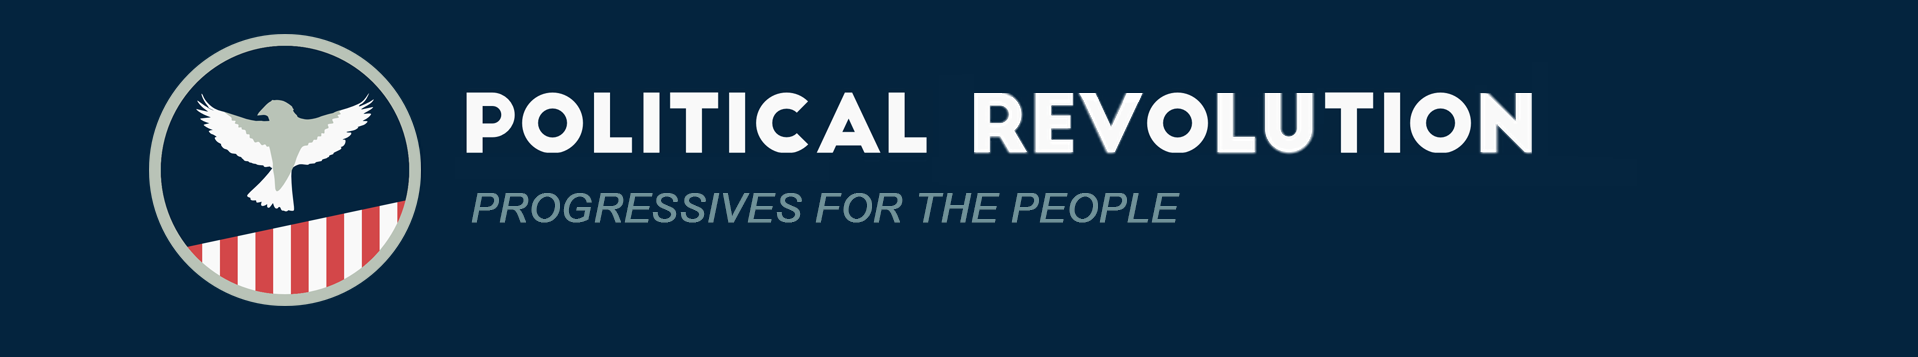 POLITICAL REVOLUTION: PROGRESSIVES FOR THE PEOPLE